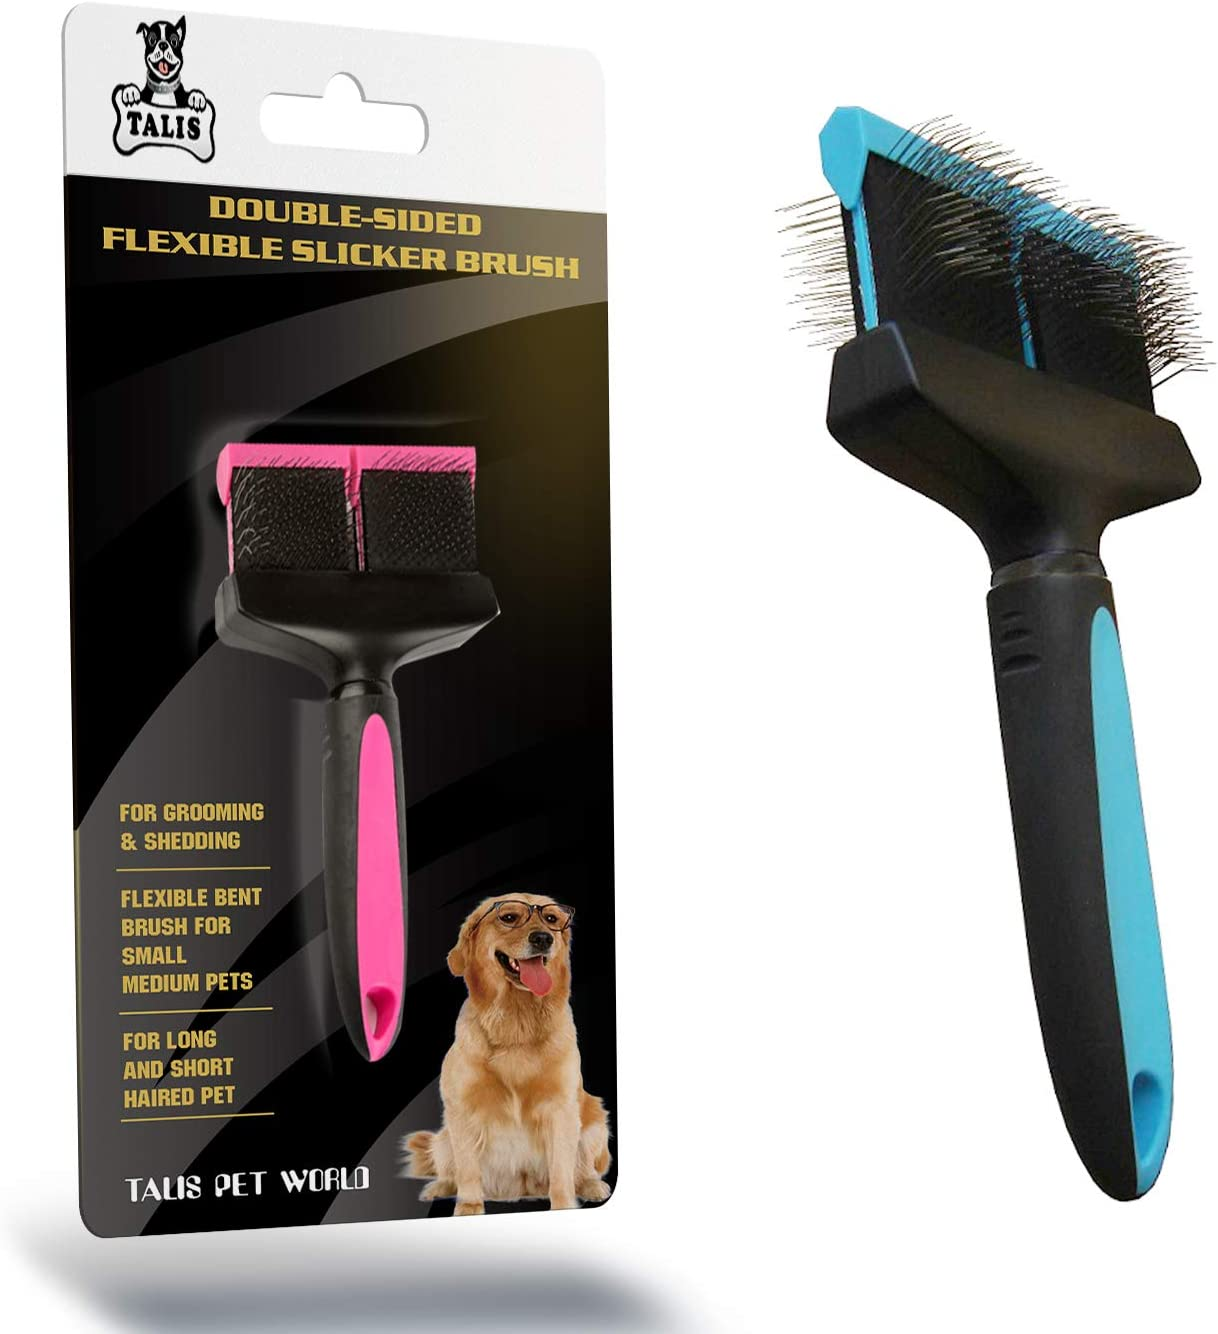 Talis-us LLC Double-Sided Pet Brush for Grooming & Shedding | Double Slicker & Soft Bristle Fine Flexible Bent Brush for Small Medium Cats, Dogs & Other Animals | Long and Short Hair Pet Deshedding